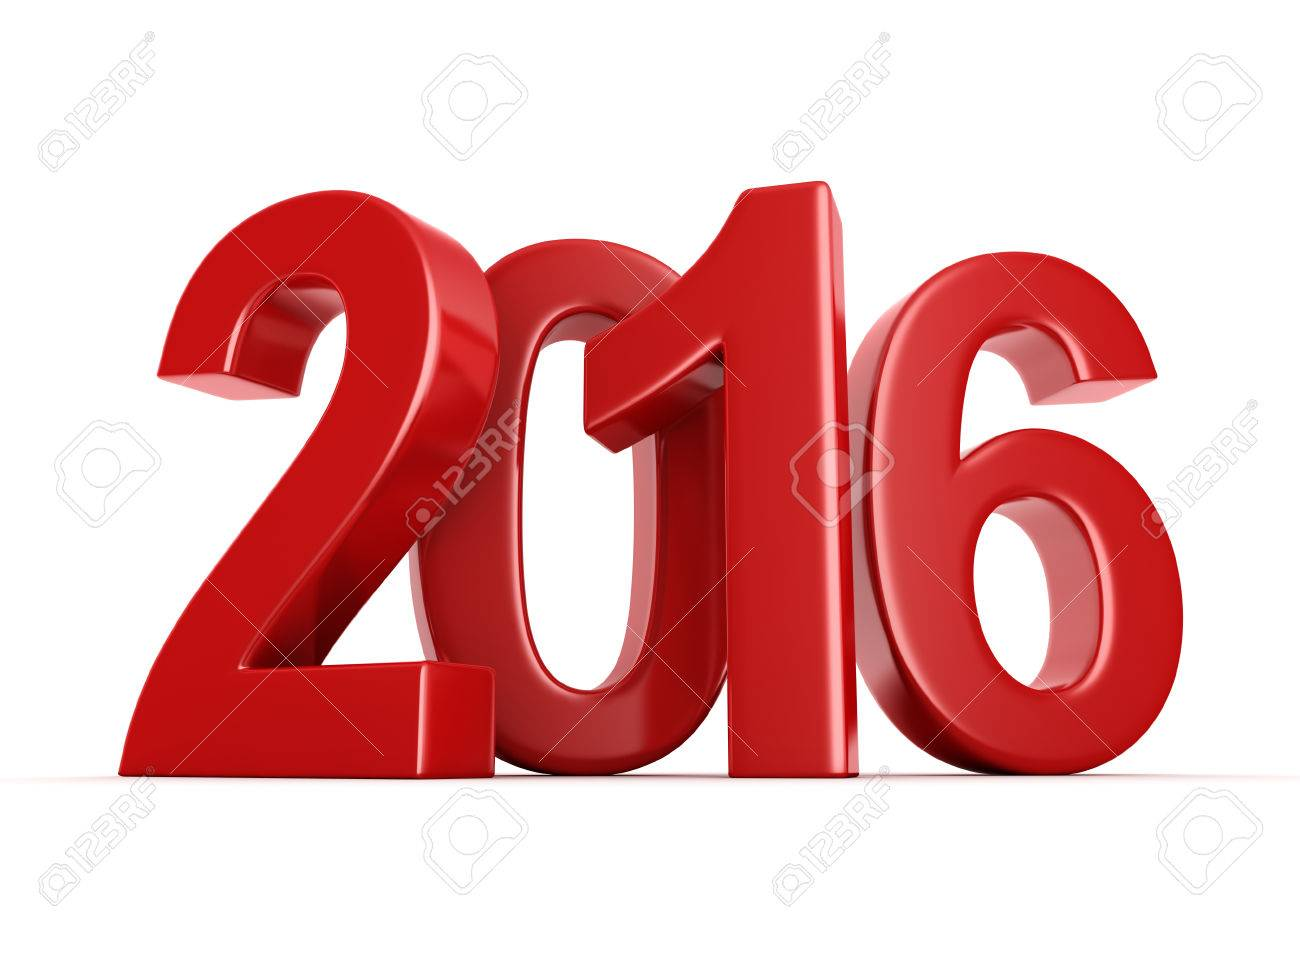 1300x975 Red 2016 New Year Digits On White Background Stock Photo, Picture